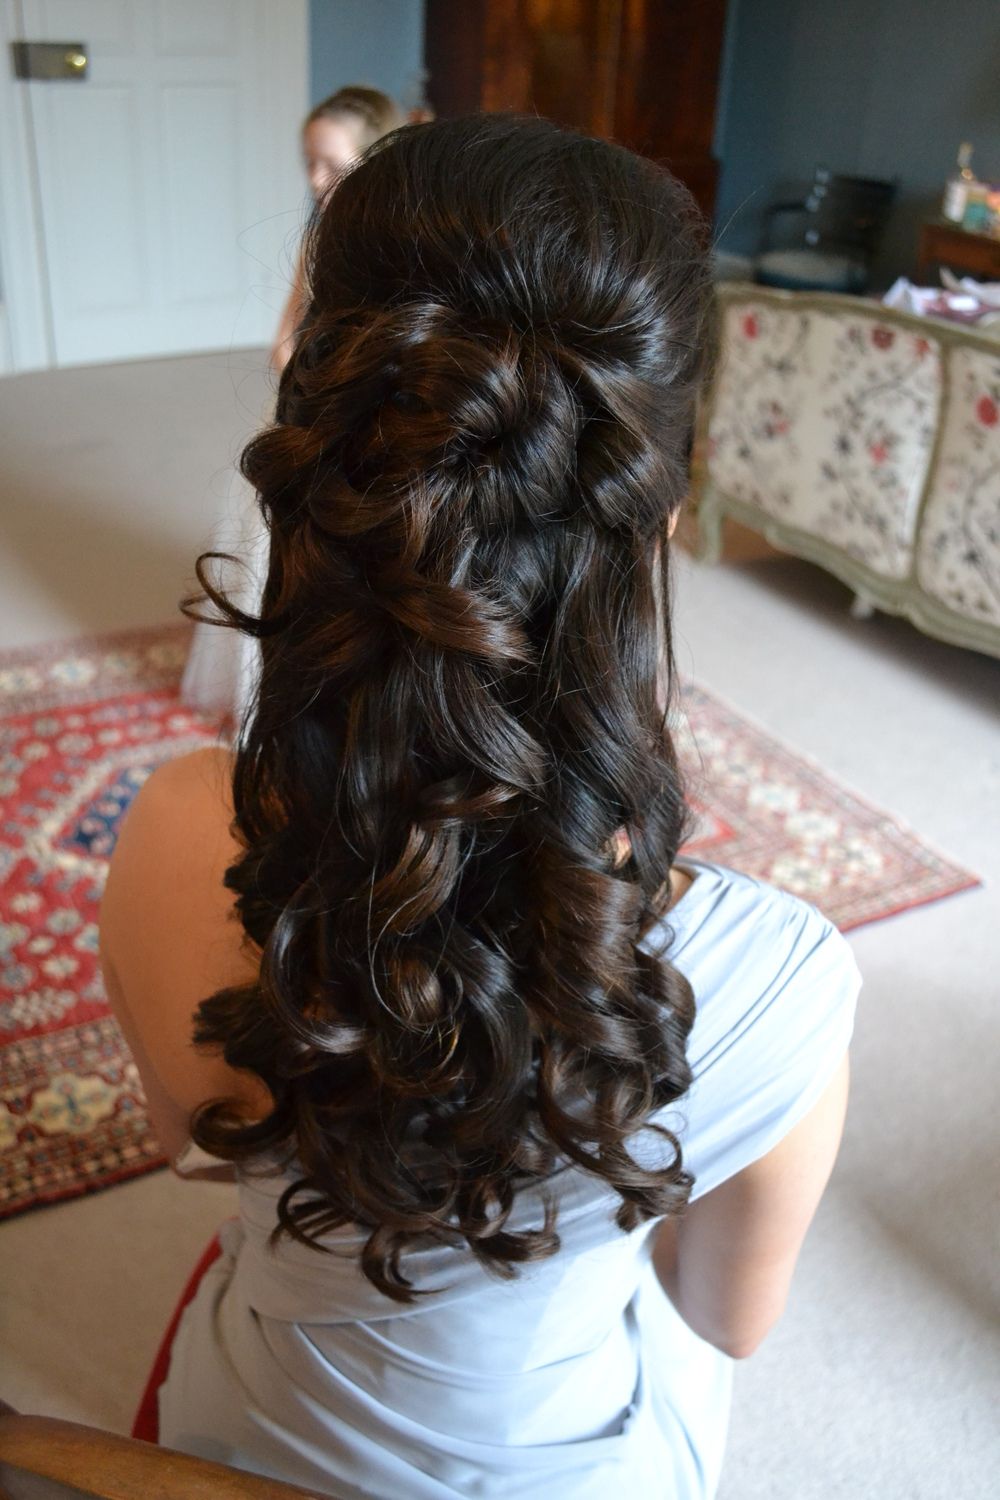 Favorite Long Curly Bridal Hairstyles With A Tiara Pertaining To Half Up Half Down Curly Bridesmaid Hairstyles With Tiara Formal (View 6 of 20)